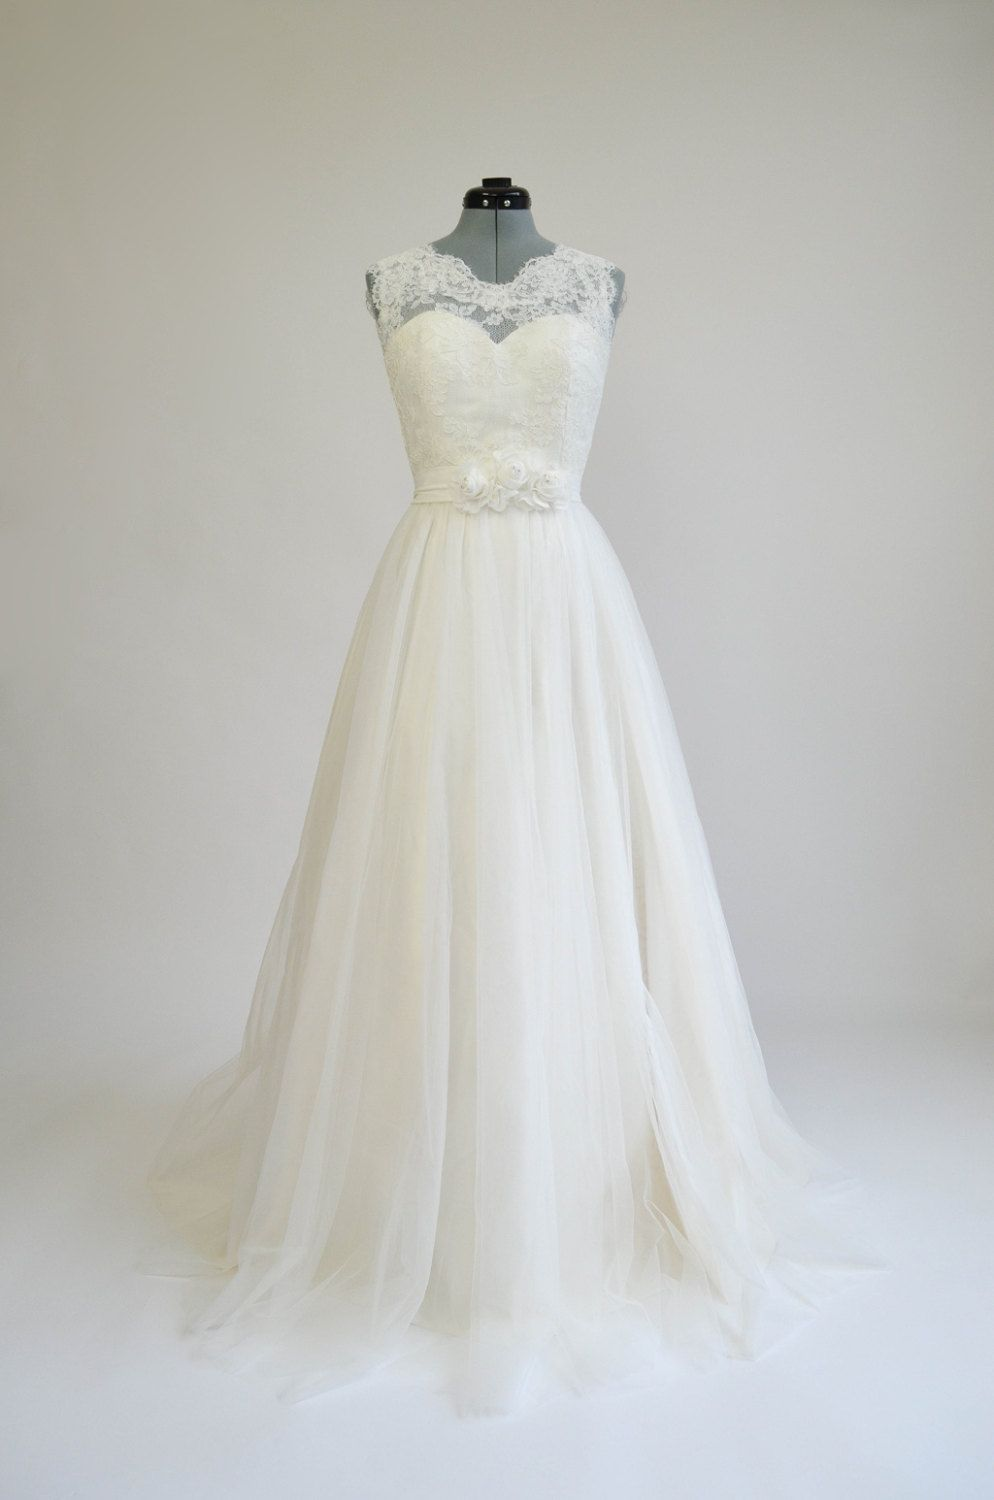 Superieur Ivory Sleeveless Lace Wedding Dress With Tulle Skirts. Under 500 Dollars.  Idk How I Feel About Tulle Skirts, But Love Everything Else.